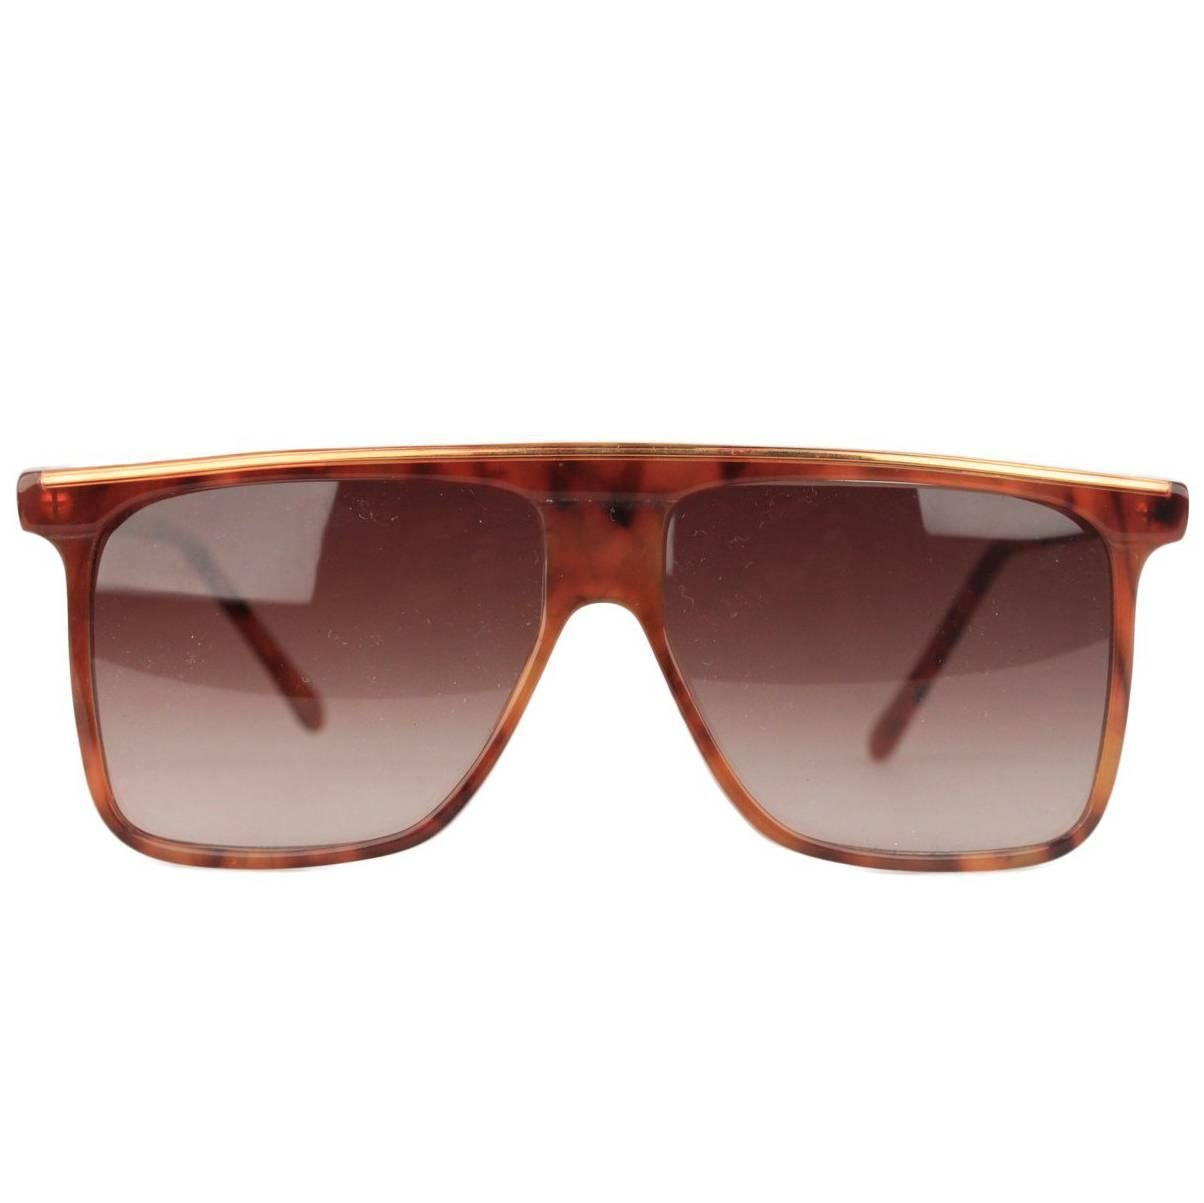 19c01623545c9 Gianni Versace Sunglasses Mod T74 C Col 869 Rh For Sale at 1stdibs